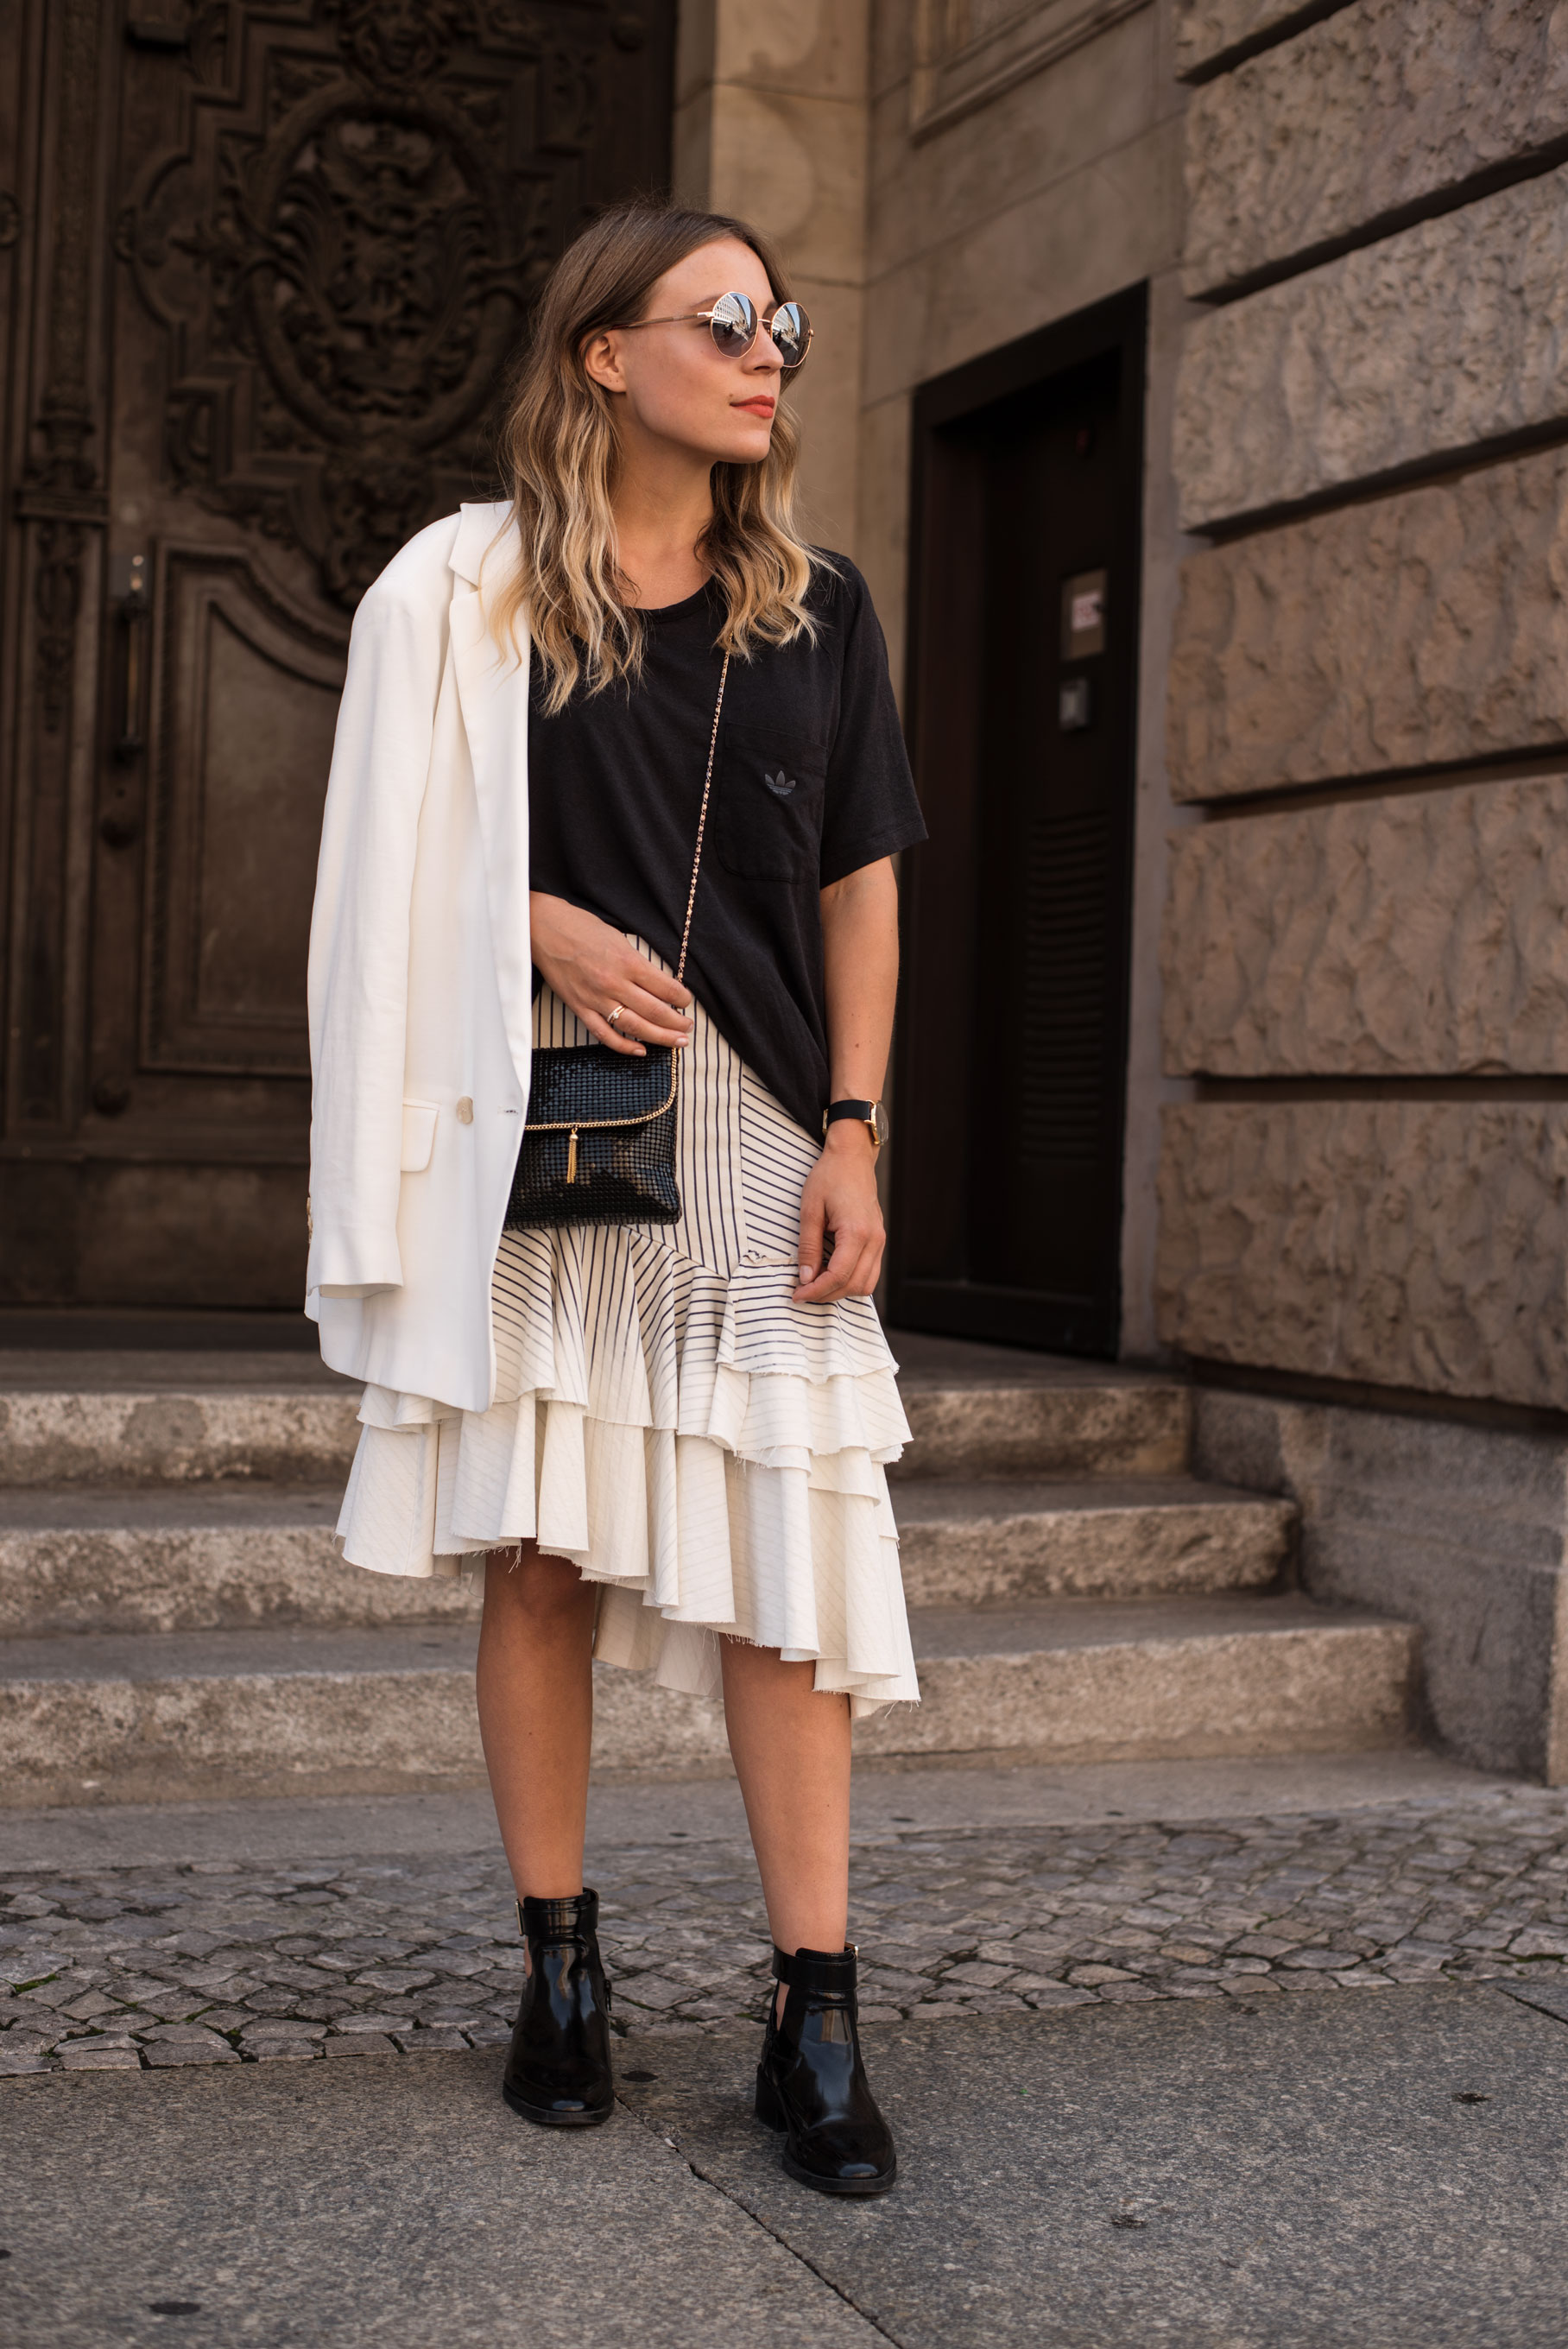 Denim Volant Skirt Rüschen Black and White Guess Adidas Streetstyle Fashion Week Berlin Casual Chic Sariety Modeblog Fashionblogger Heidelberg_23